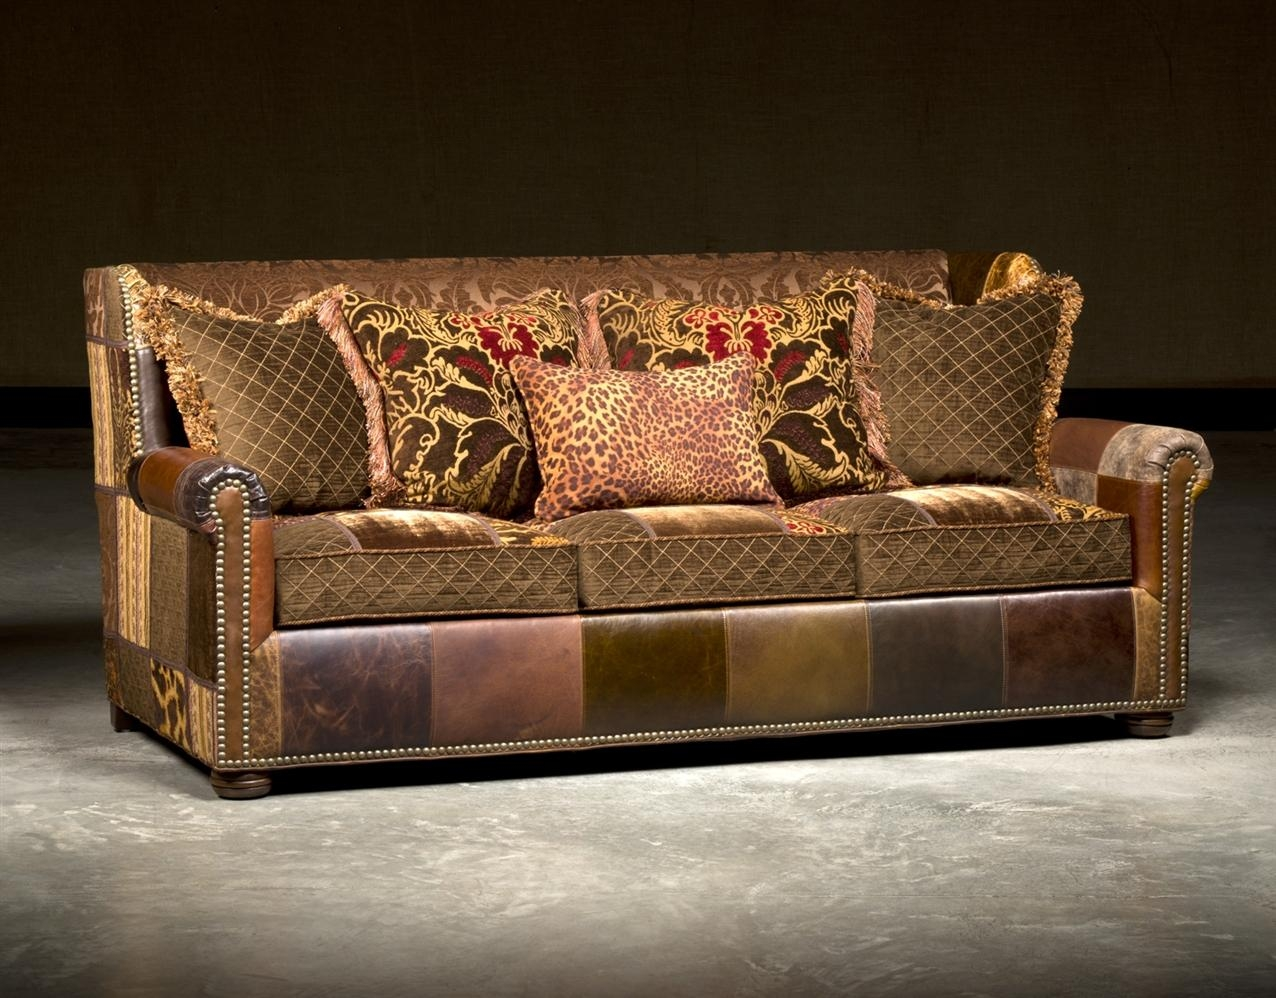 27 High End Leather Sectional Sofas | Auto-Auctions with regard to High End Leather Sectionals